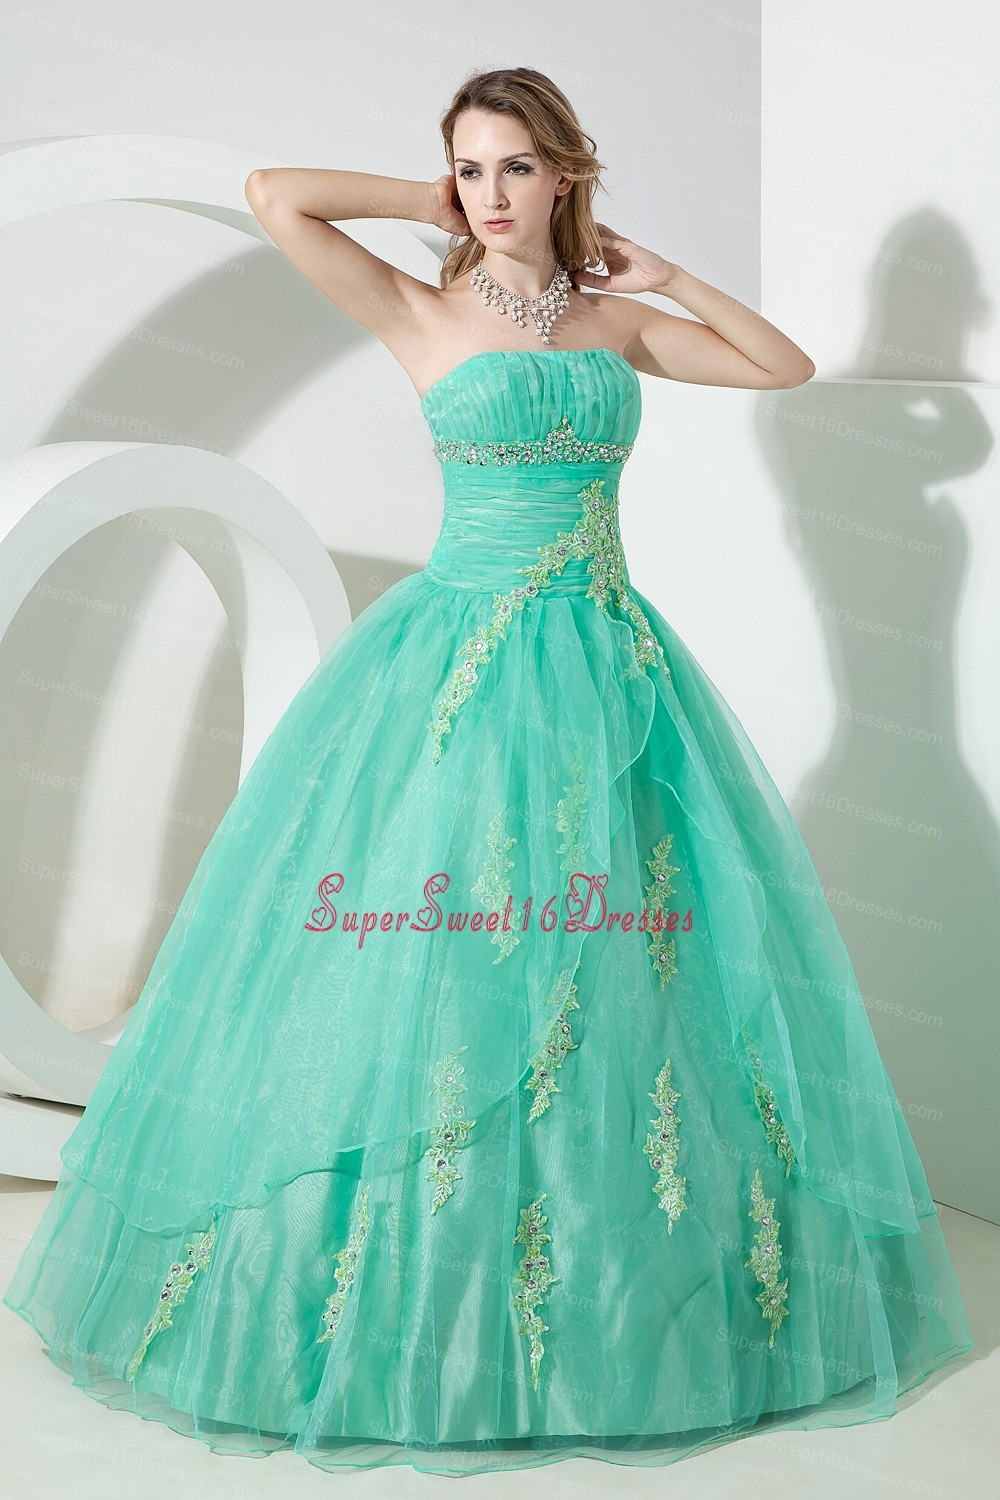 Turquoise Sweet Sixteen Dresses,Turquoise Dress for Sweet 16 Party